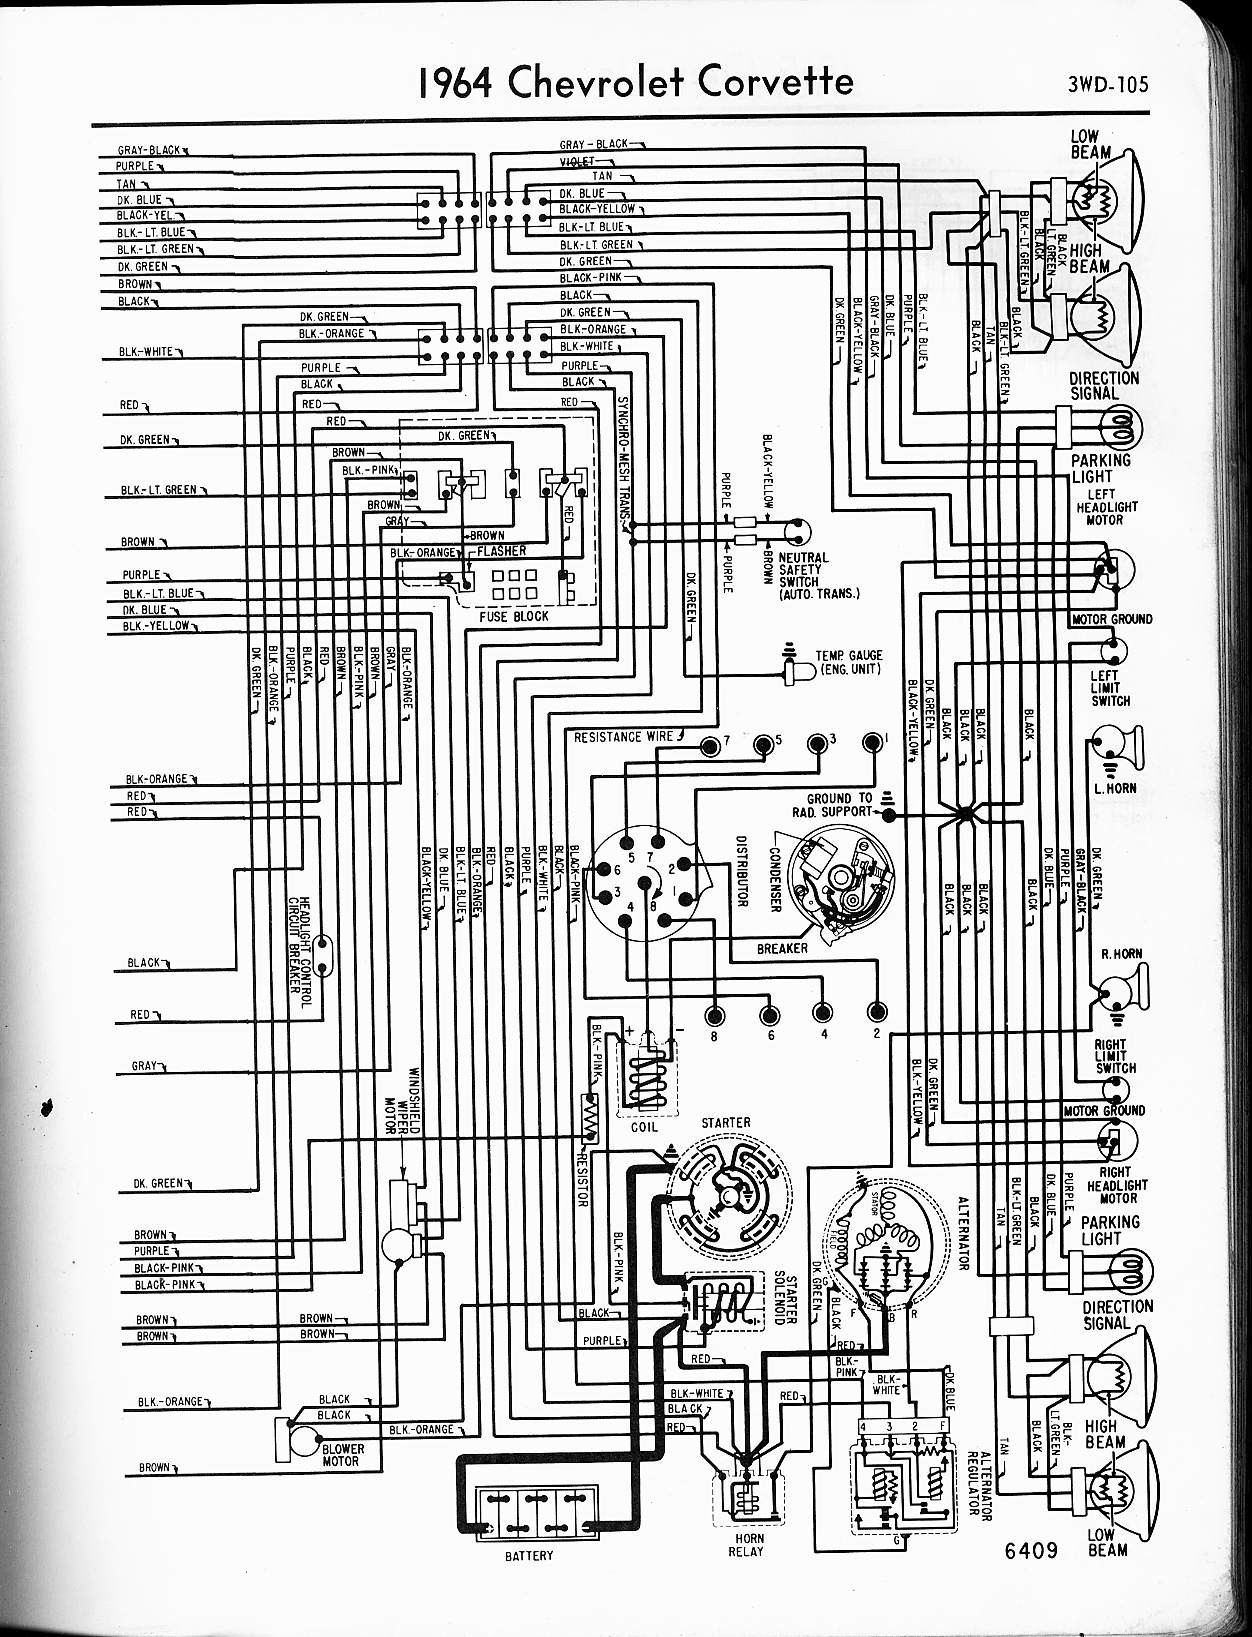 1965 C10 Wiring Diagram Auto Electrical Clark Cmp75 81 Corvette Schematics